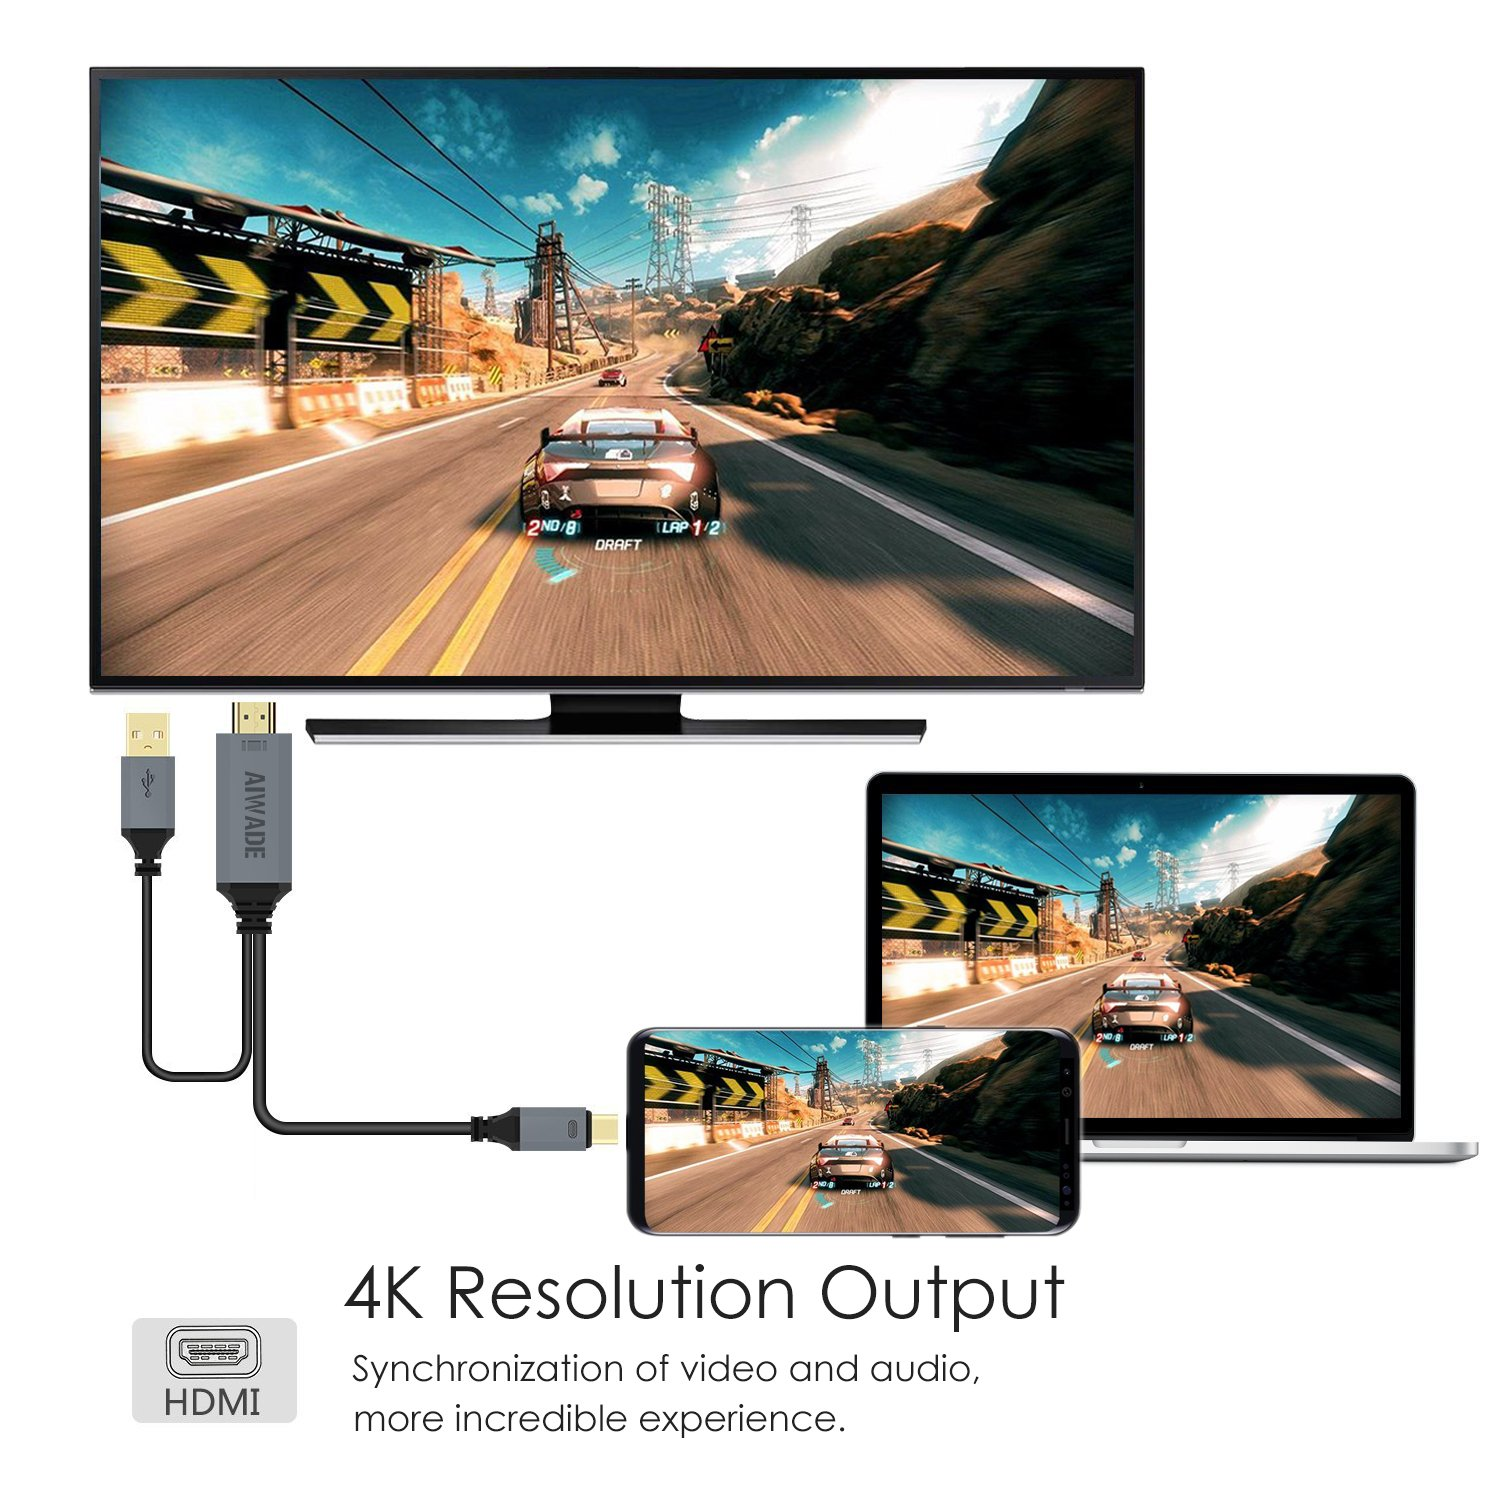 USB C to HDMI Cable,MacBook Pro USB 3.1 Type-C to HDMI 4K Digital AV Adapter Charger Cord,Android LG Samsung Galaxy HDMI Converter Dongle for TV Monitor Projector,Apple iMac Thunderbolt HDMI Connector by AIWADE (Image #3)